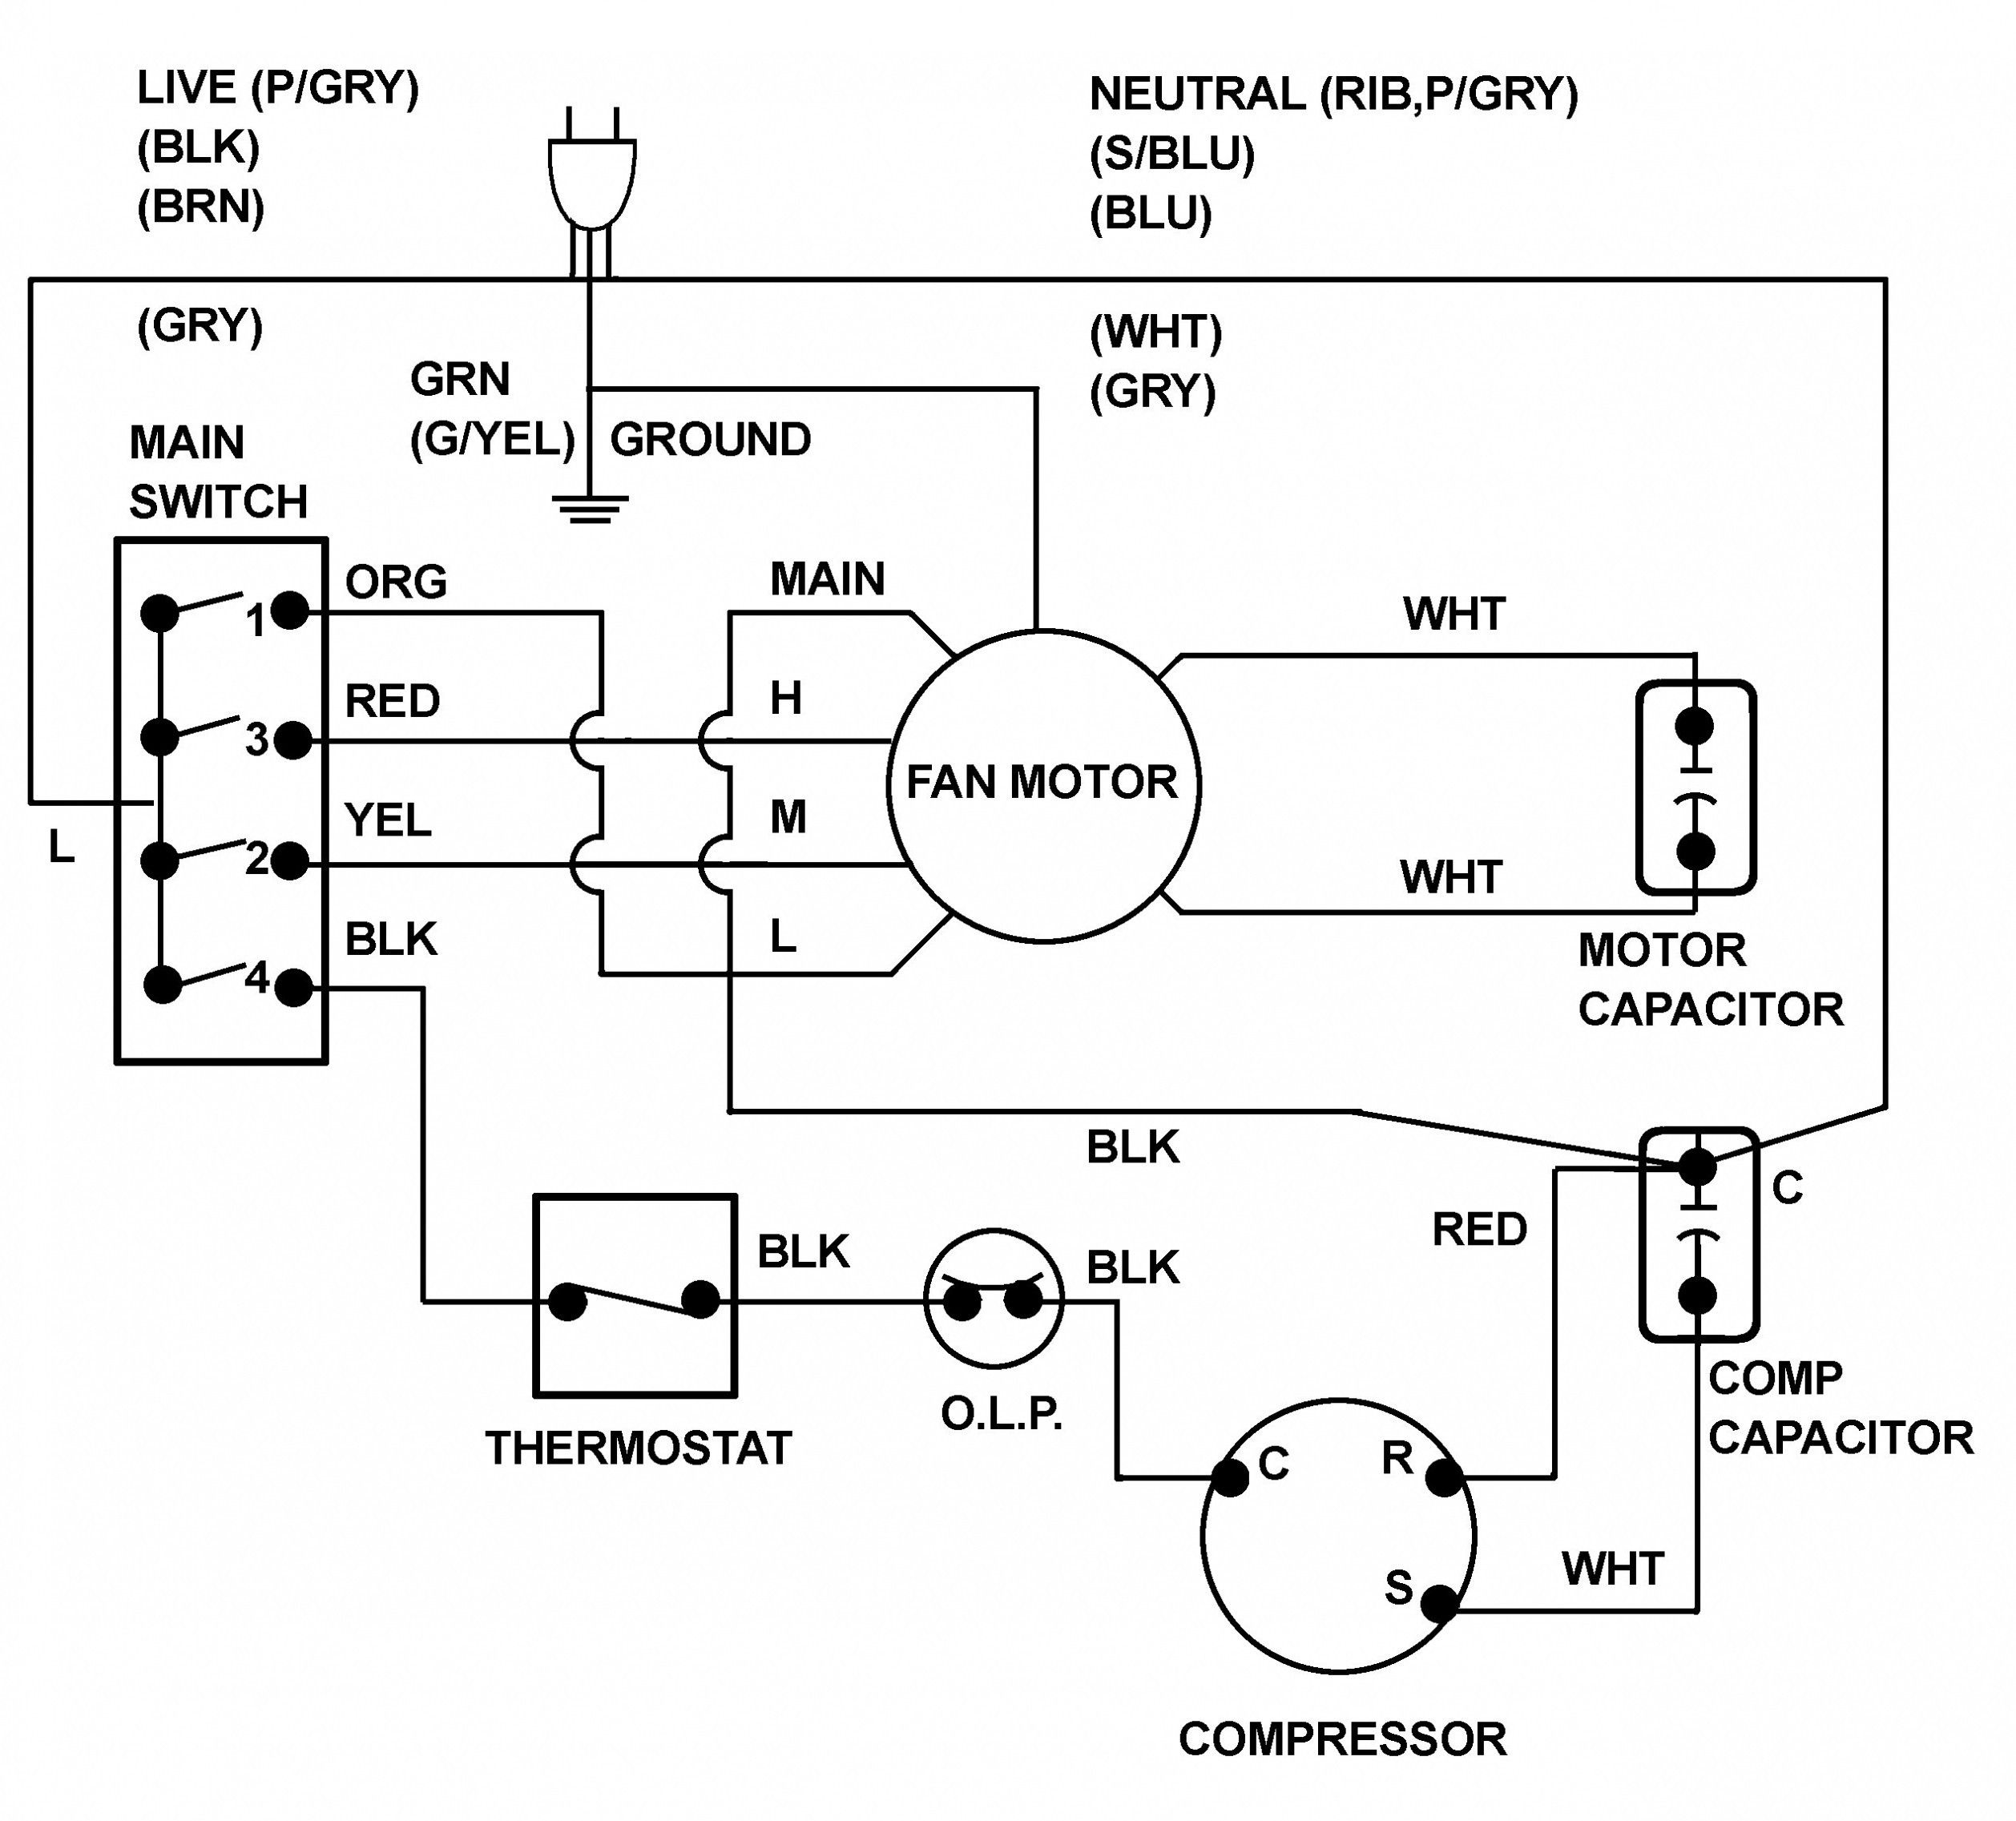 Ac Relay Which Is Com Wire Elegant In 2020 Thermostat Wiring Circuit Diagram Electrical Circuit Diagram